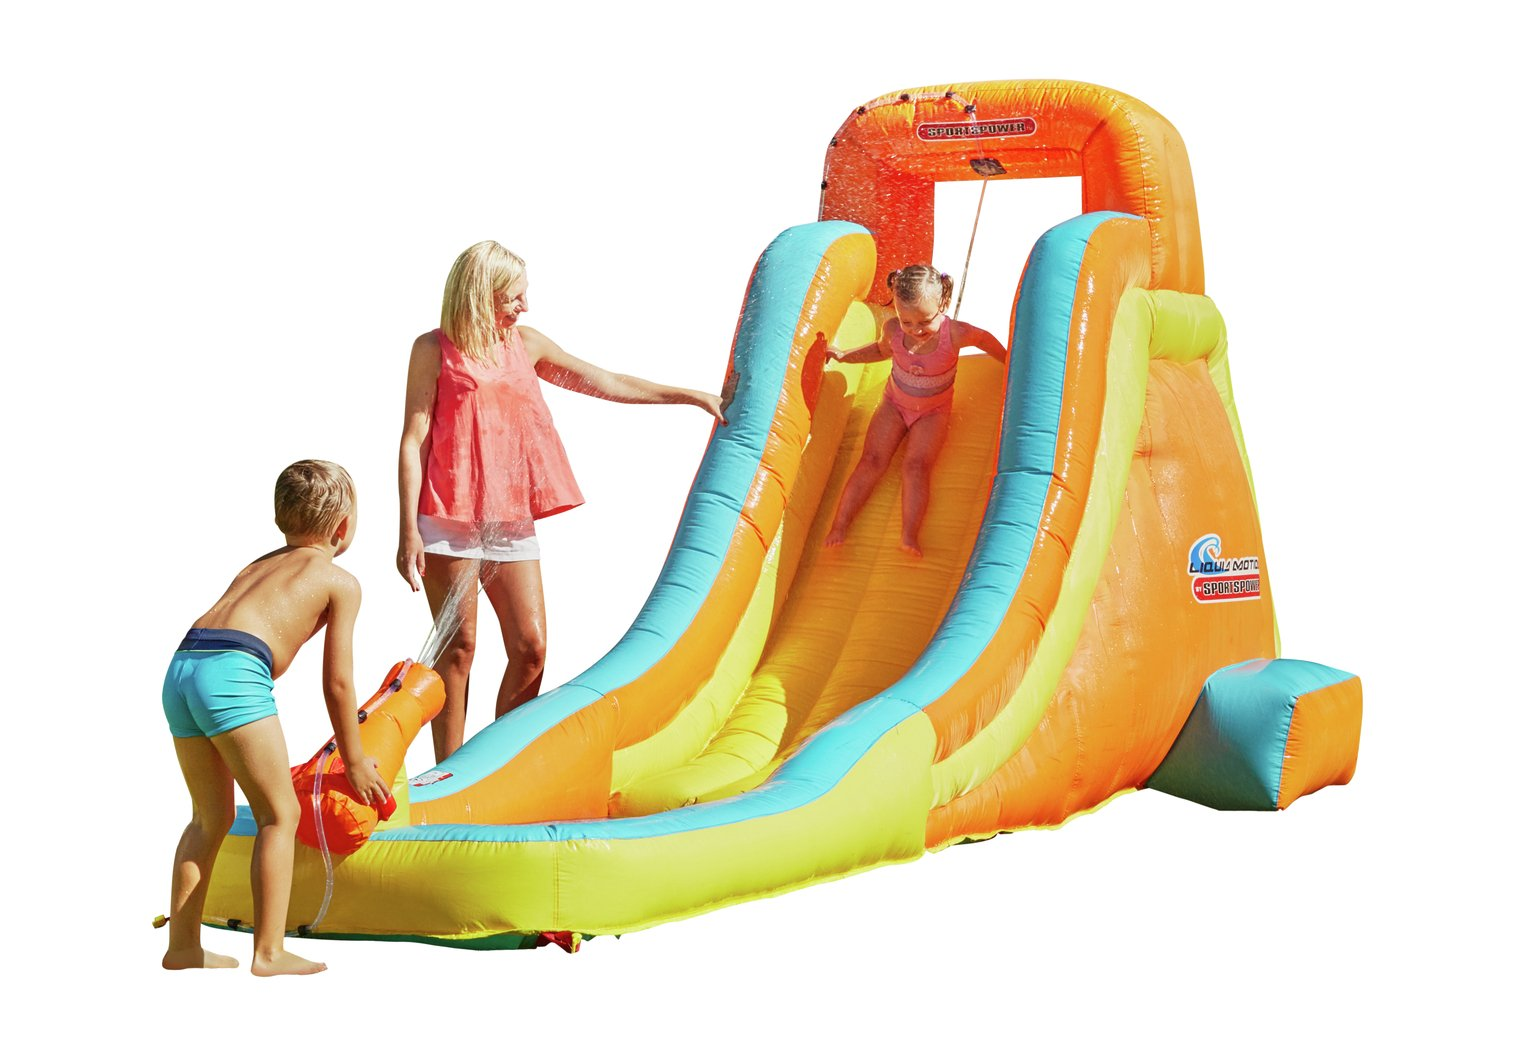 Chad valley inflatable water slide review for Garden pool argos